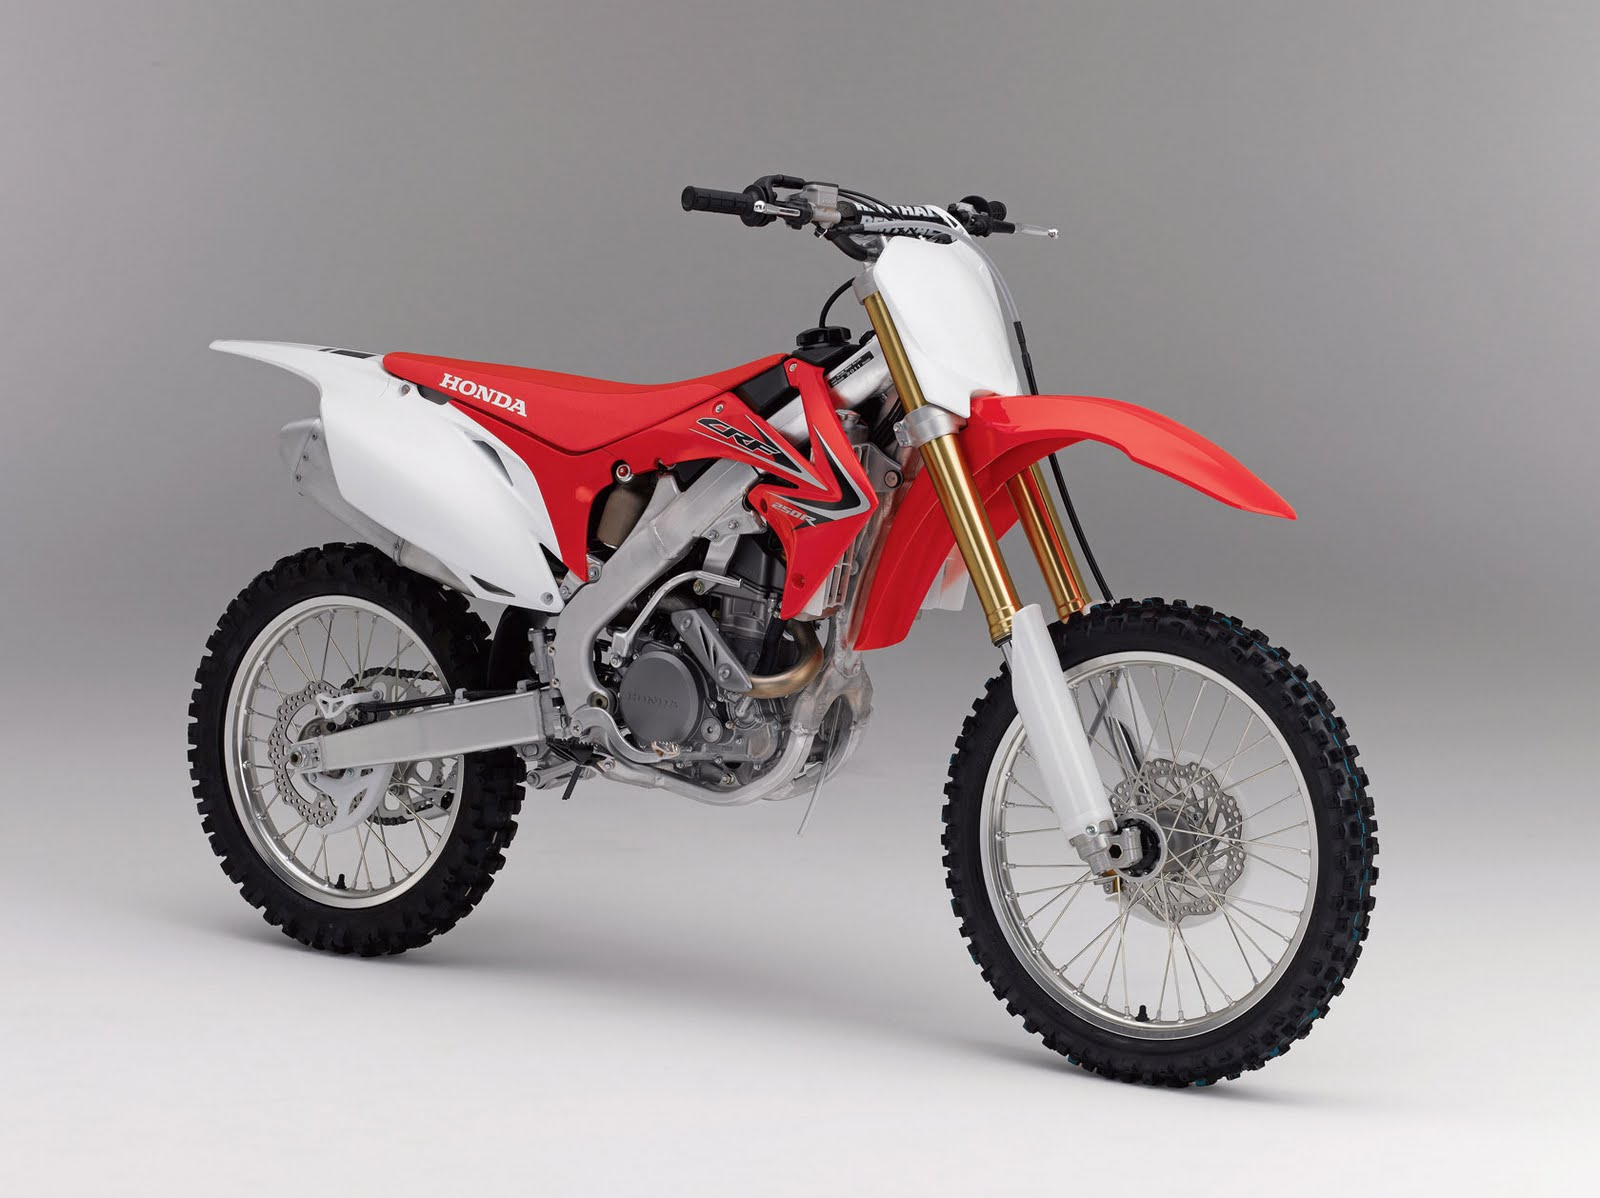 2012 honda crf250r specifications and pictures latest gadget news car news motorcycle news. Black Bedroom Furniture Sets. Home Design Ideas